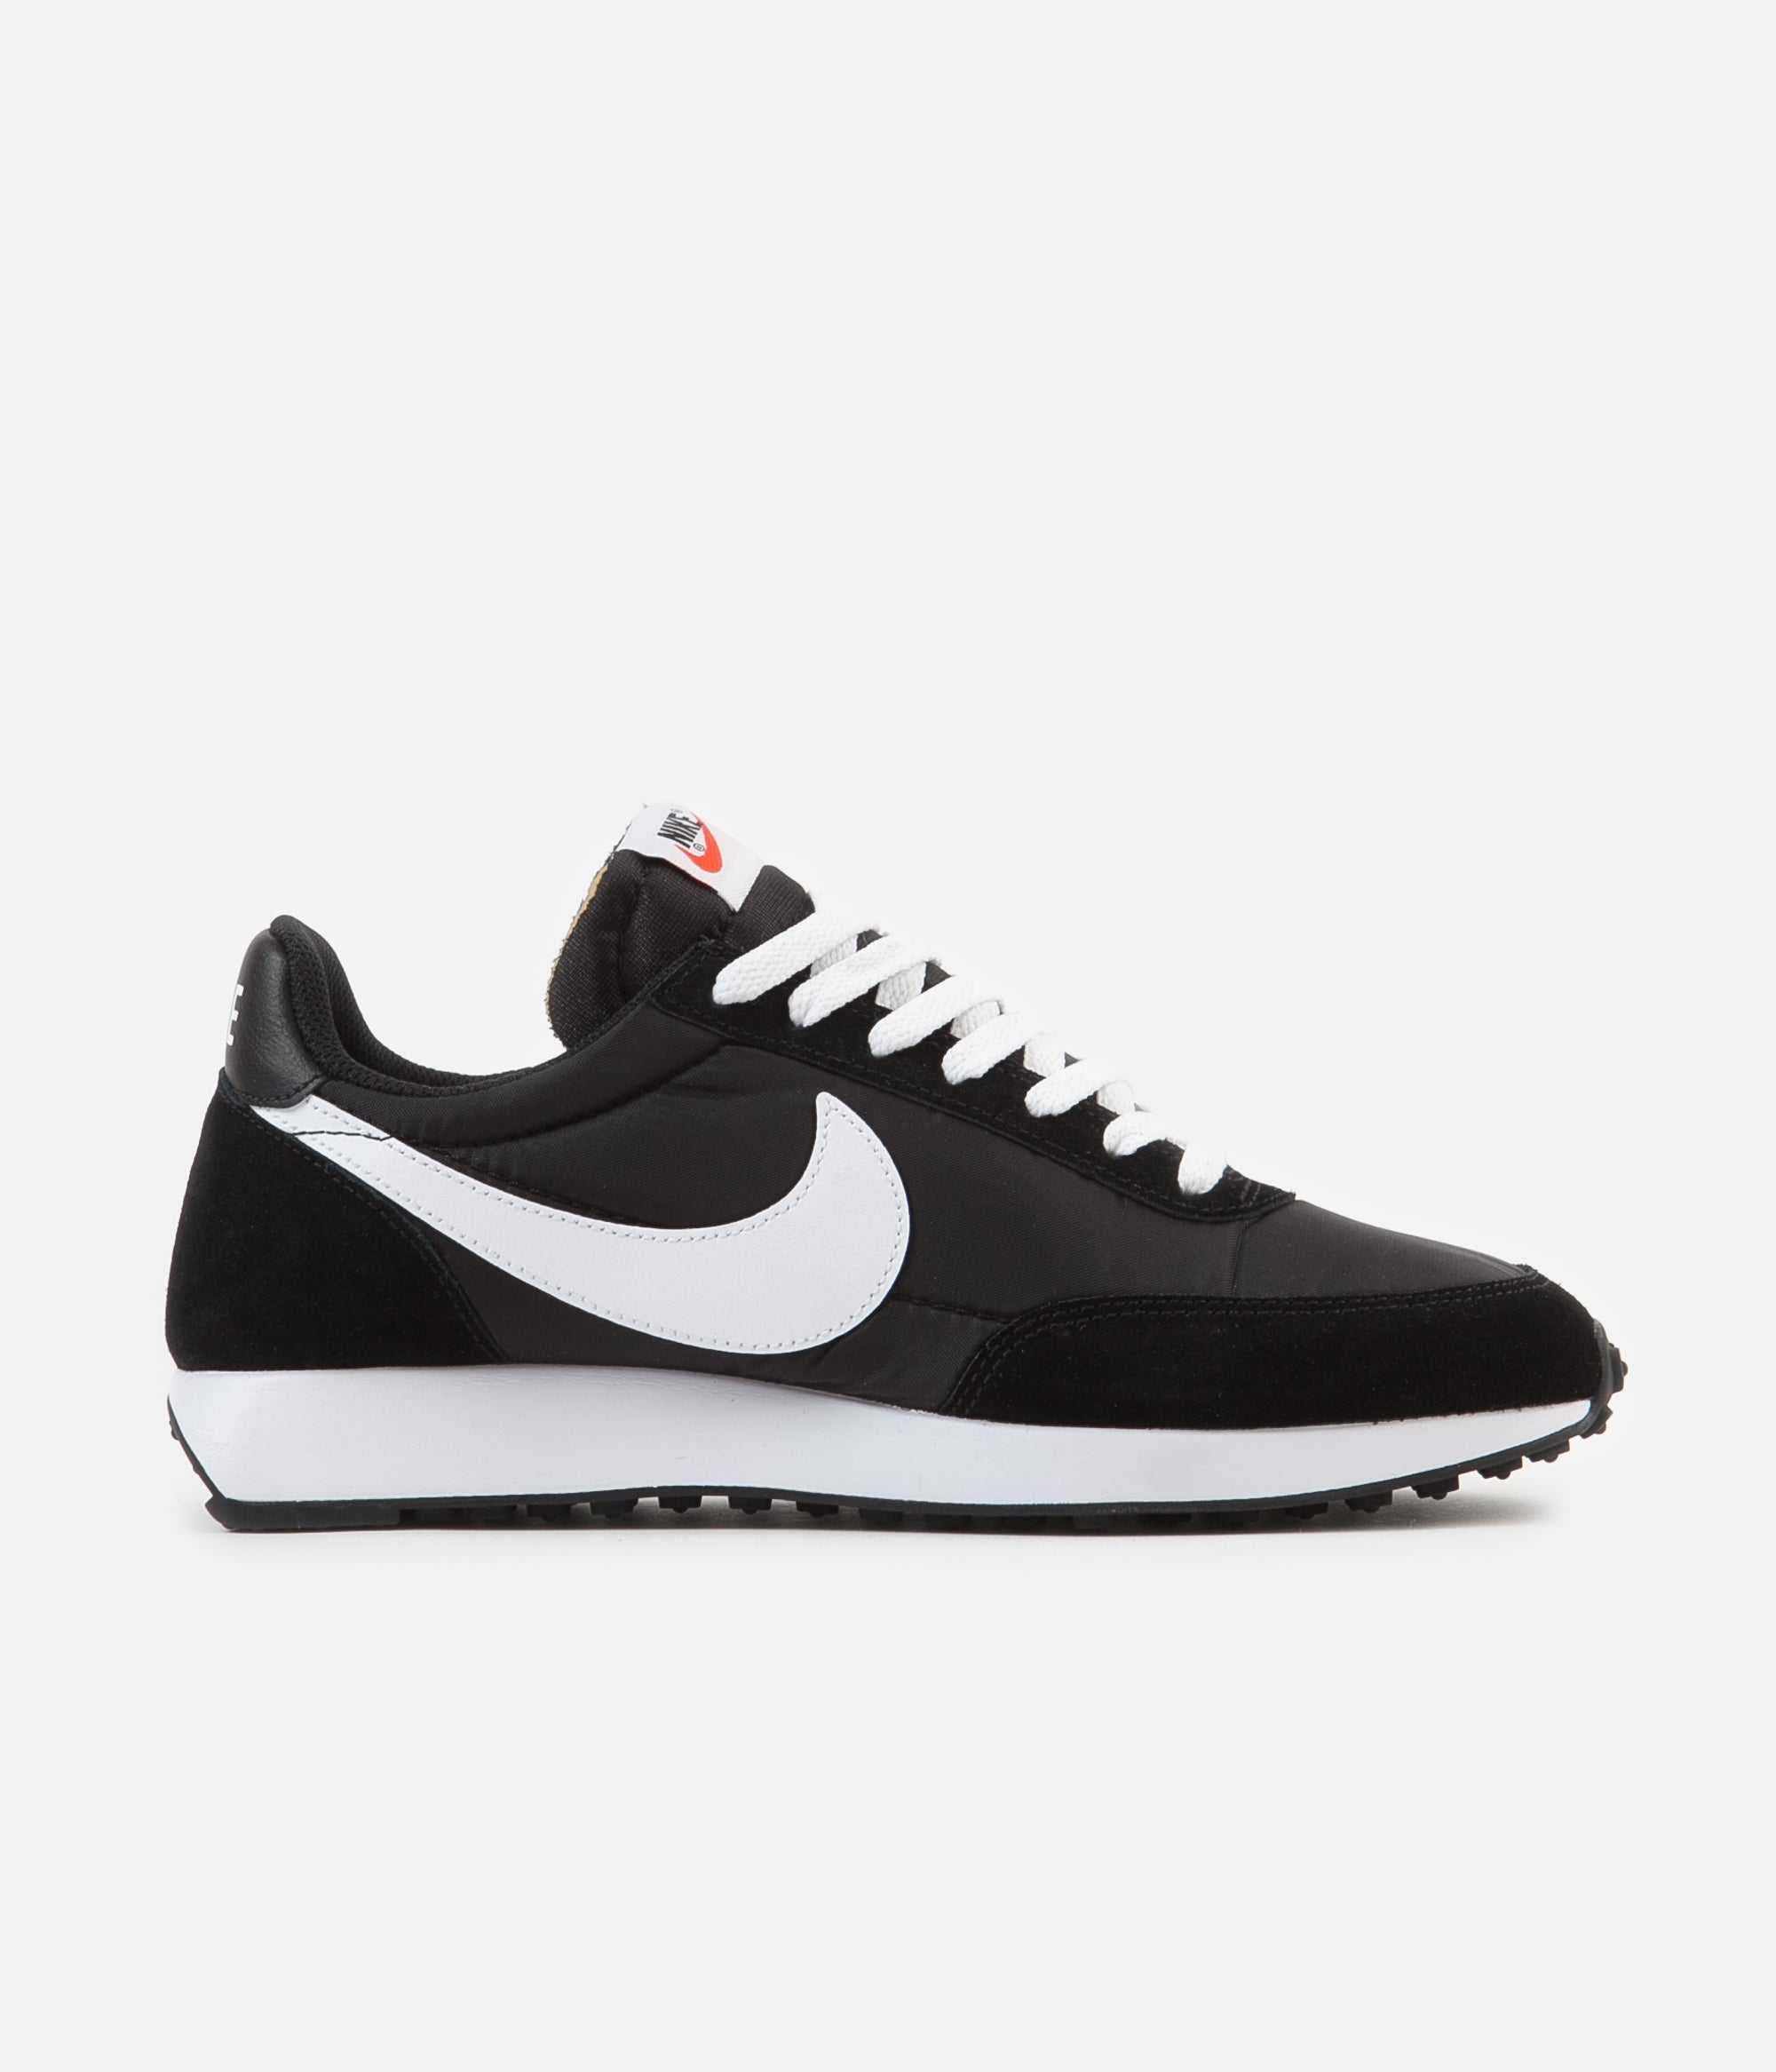 Nike Air Tailwind 79 Shoes - Black